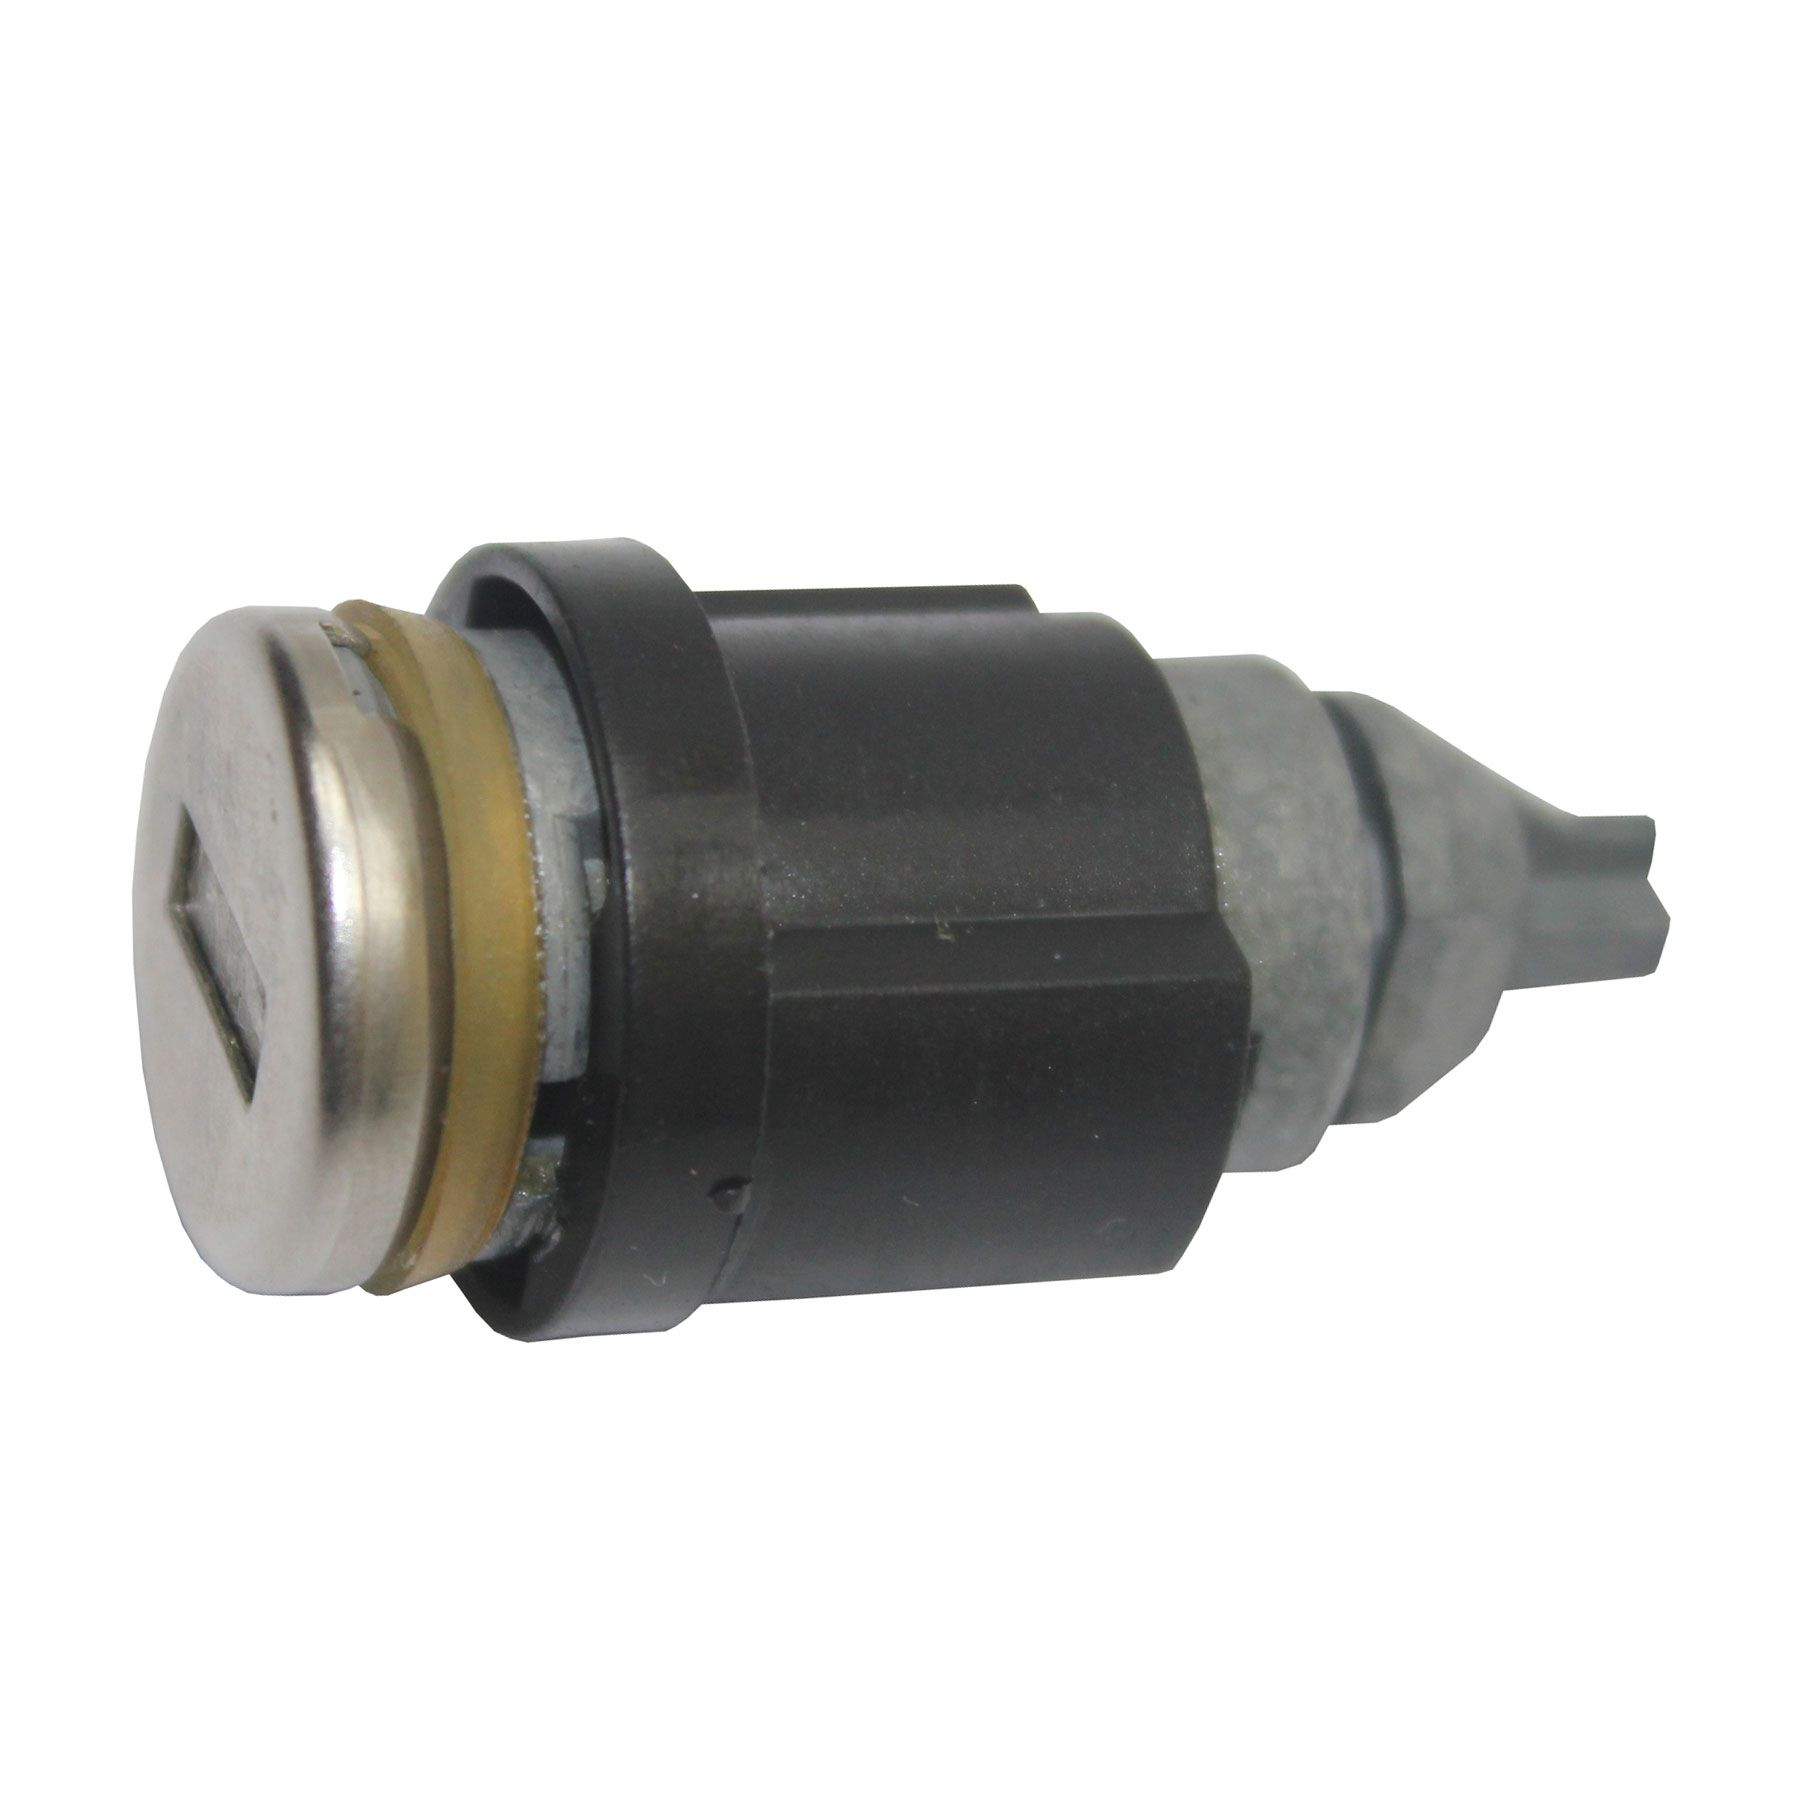 CILINDRO TANQUE AIRCROSS/PEUGEOT 307